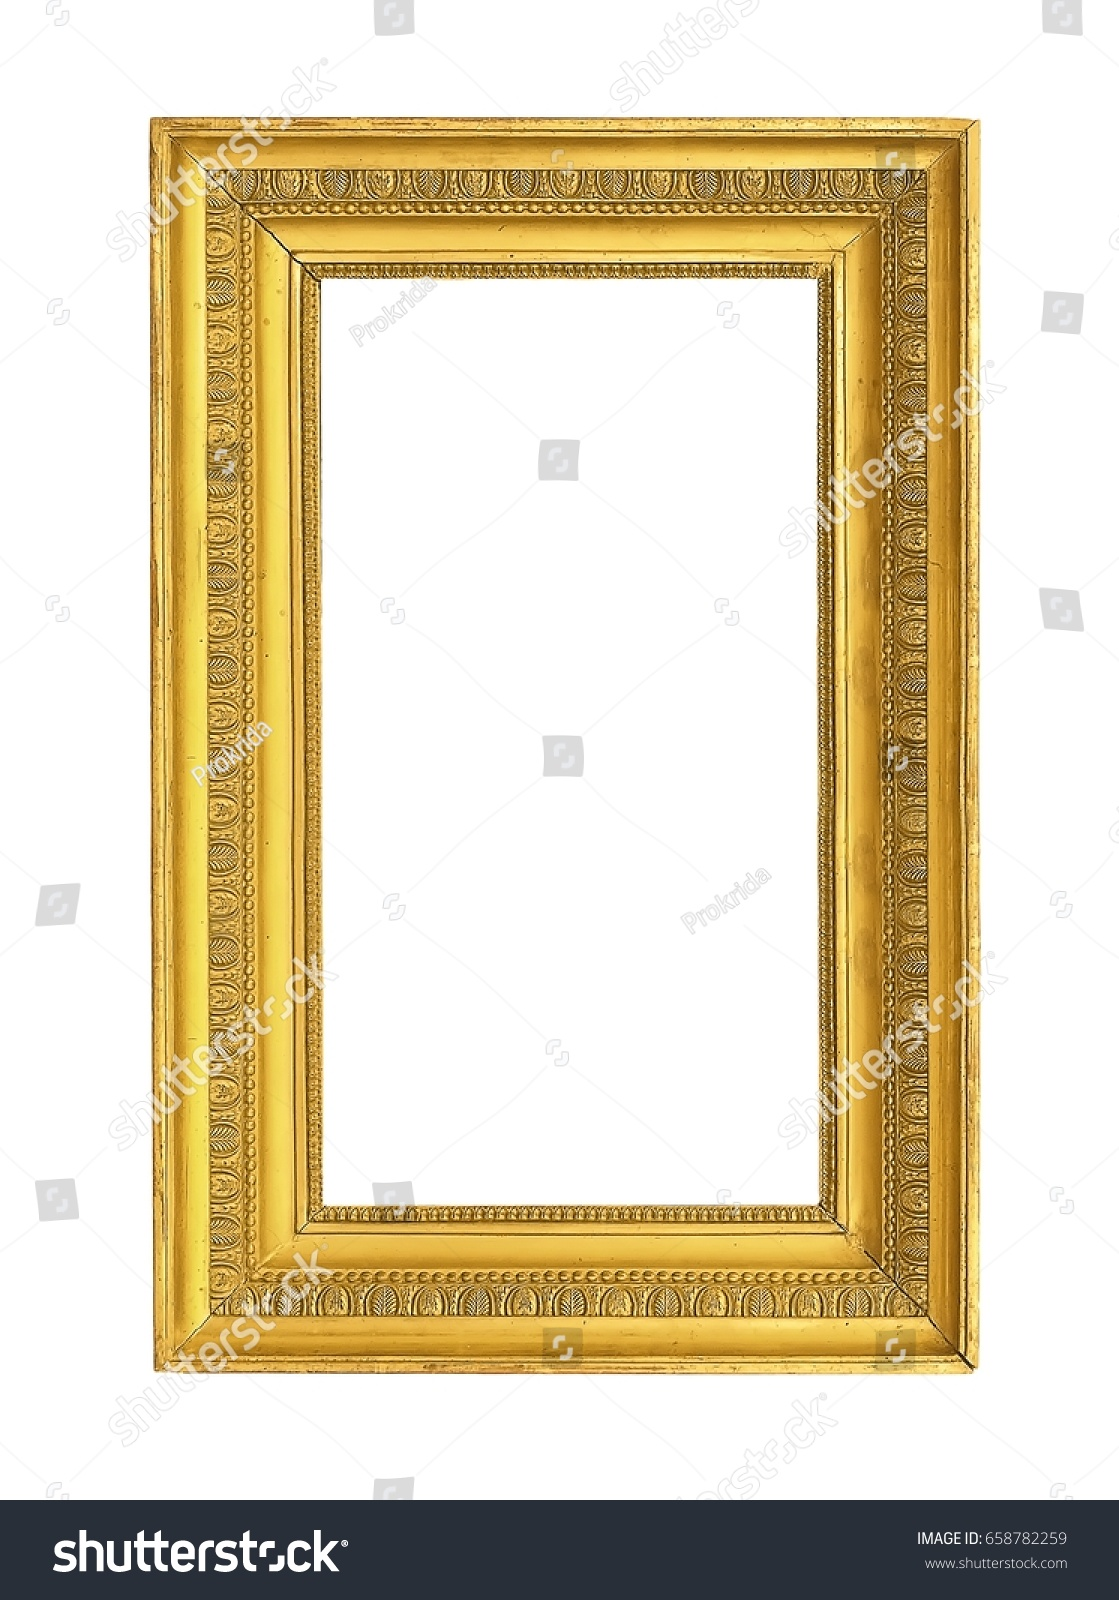 Gilded frame for paintings, mirrors or photos | EZ Canvas